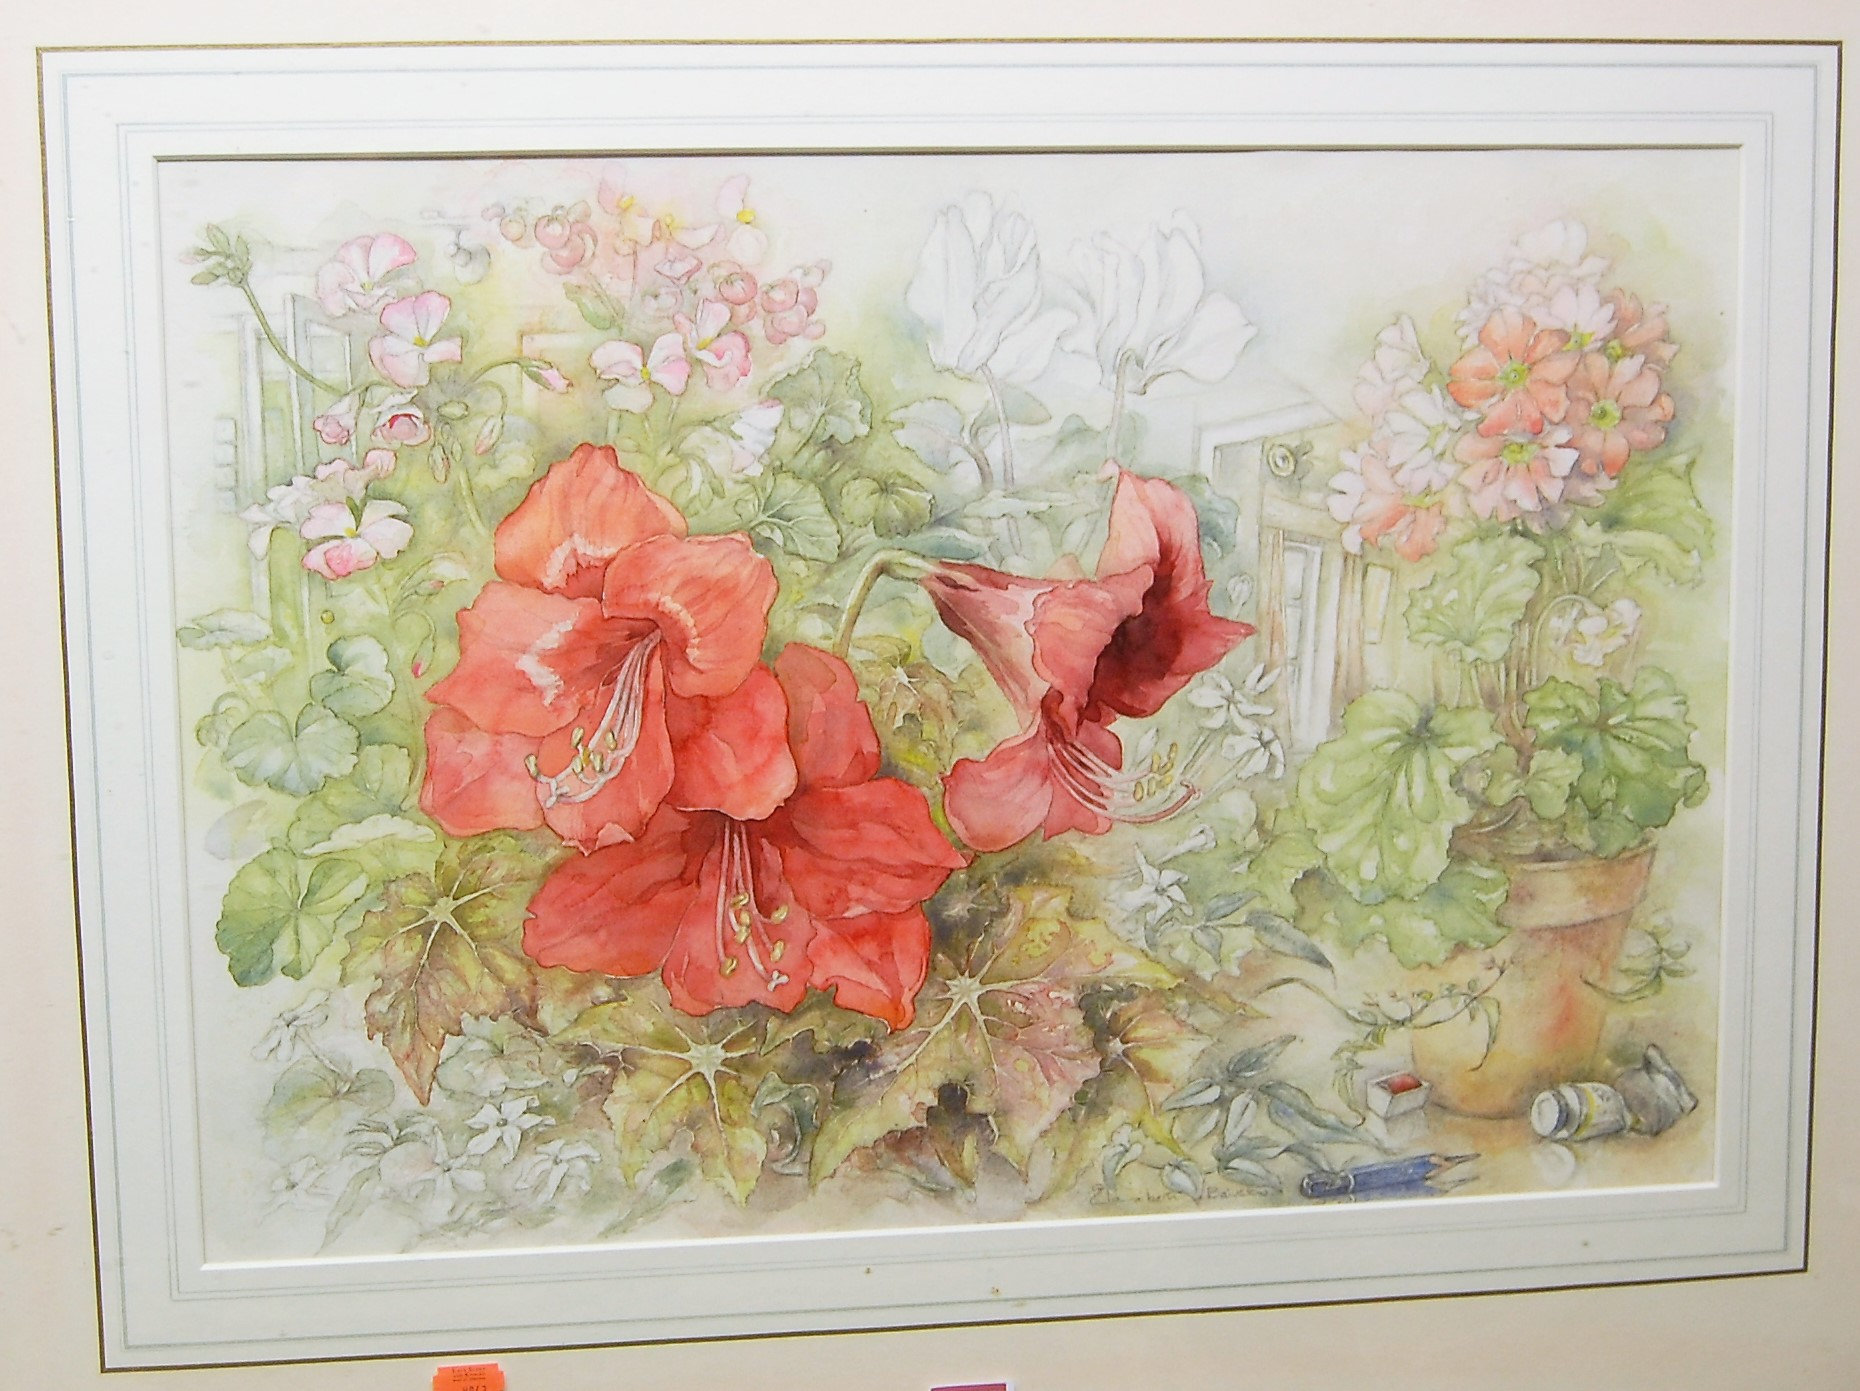 Lot 1021 - Elizabeth Bearstow - Cadmium Red, watercolour, signed lower centre, 37 x 54.5cm